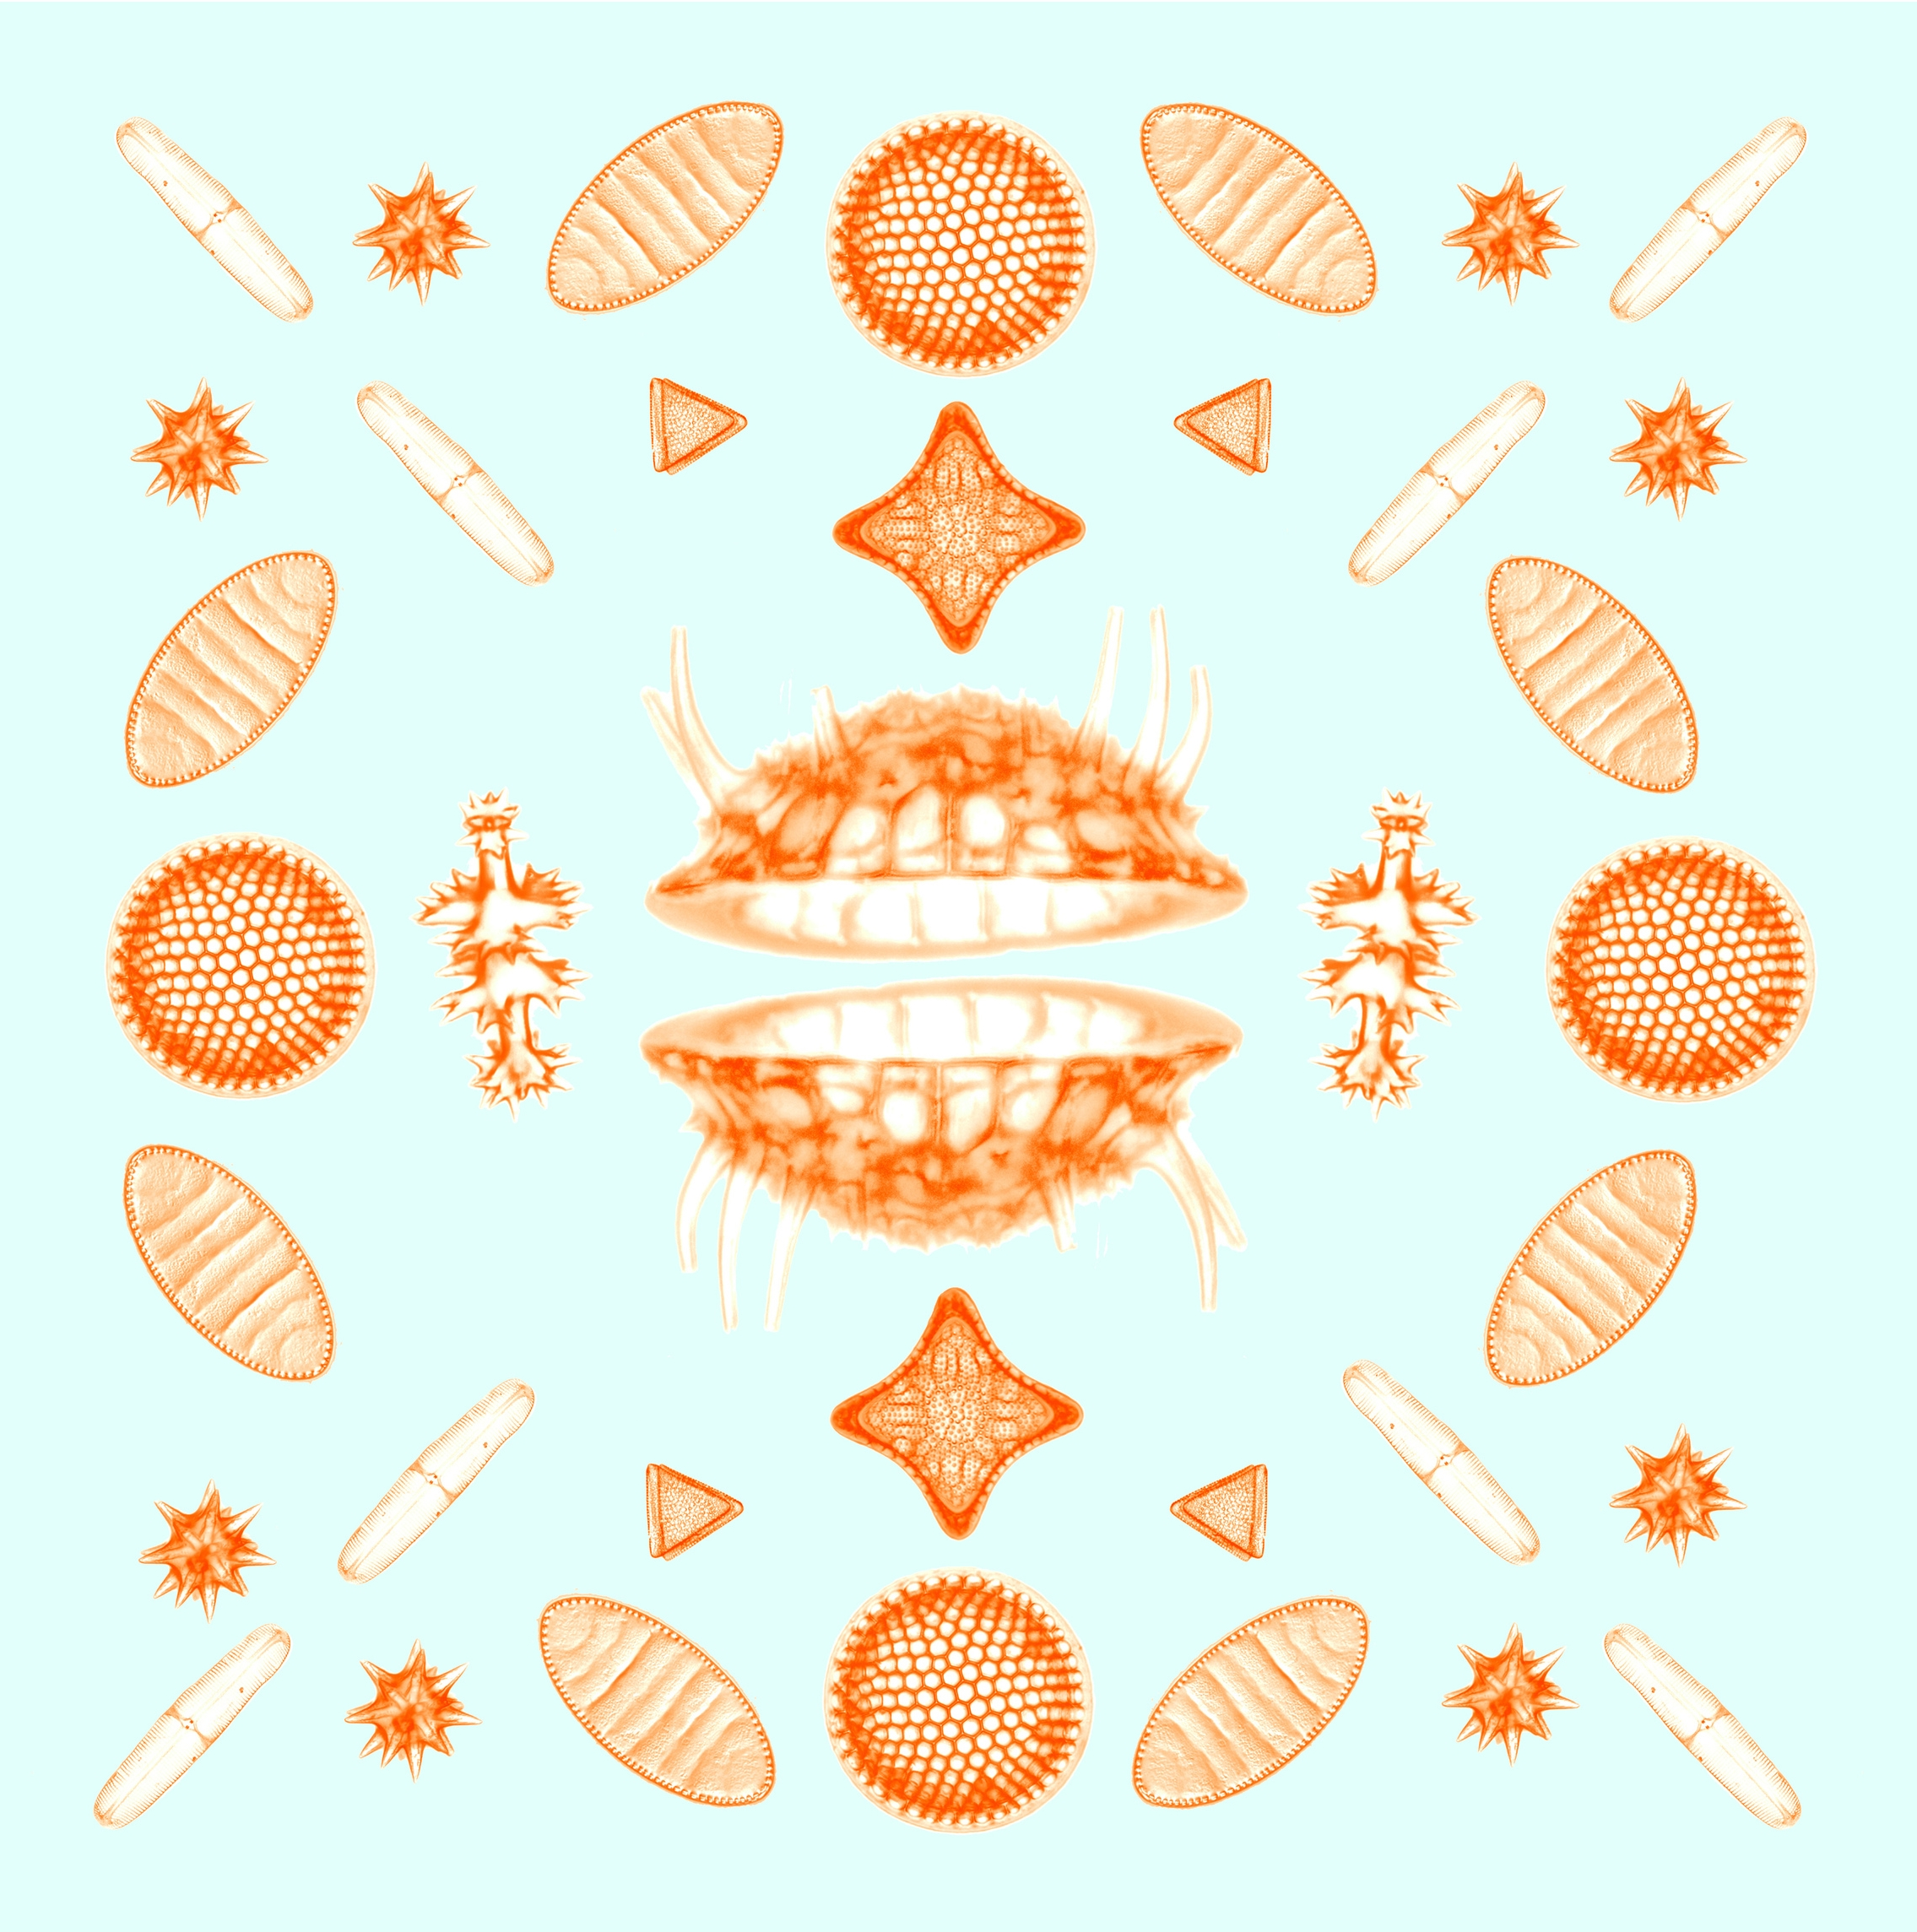 DIATOMS, ARRANGED IN THE STYLE OF A 19TH CENTURY EURO-FLORIDA MATRON